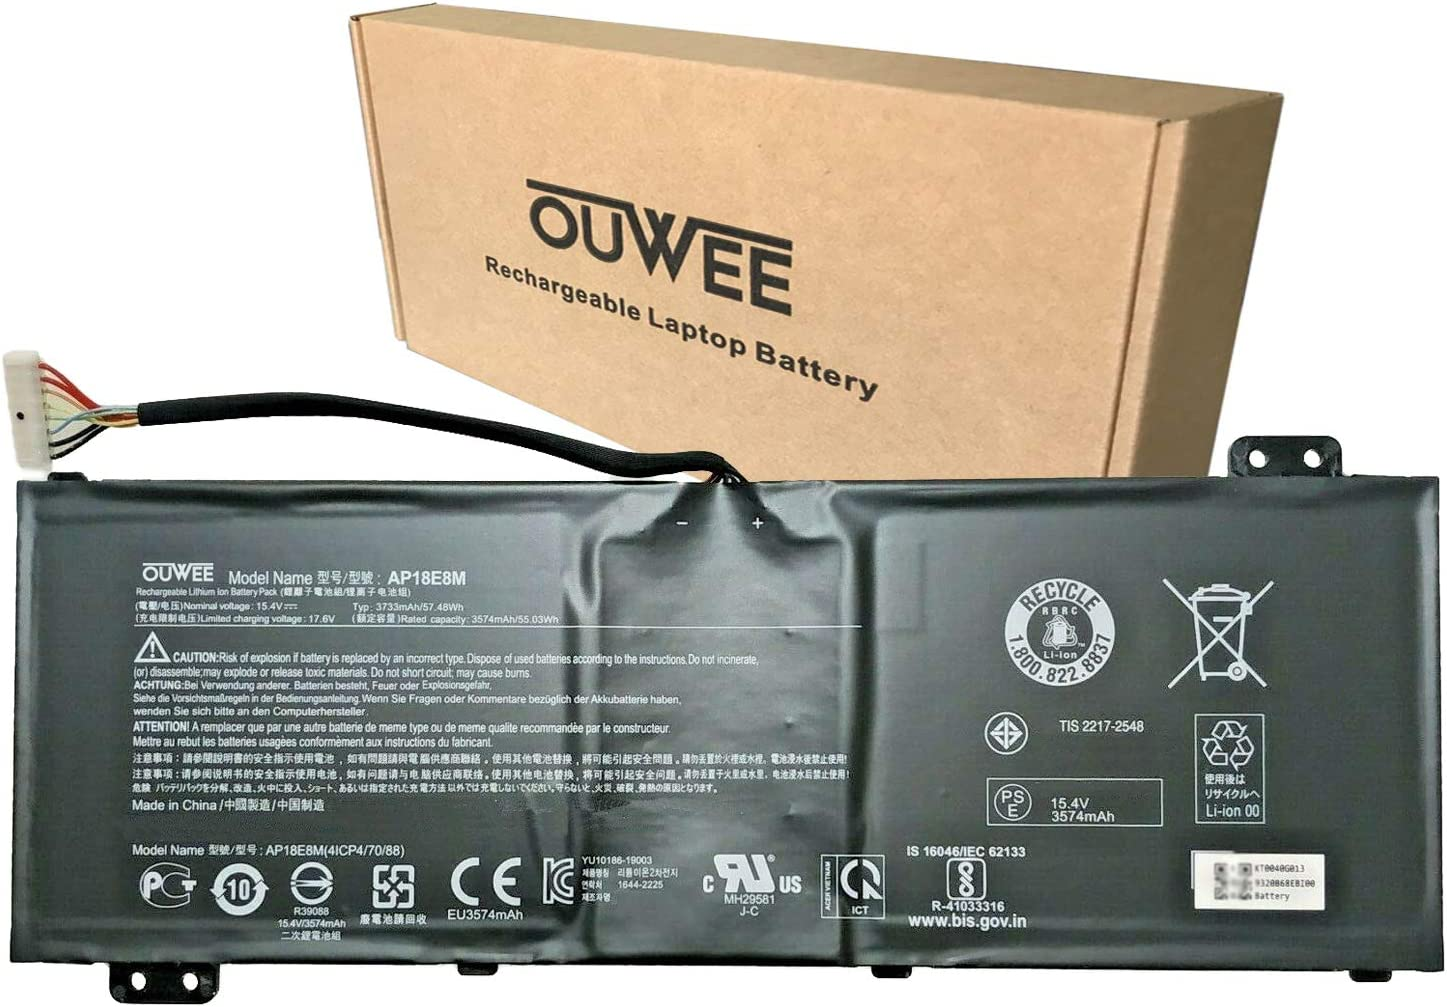 OUWEE AP18E8M Laptop Battery Compatible with Acer Nitro 5 AN517-52 Aspire 7 A715-74 A715-74G ConceptD 3 Pro CN315-71P CN315-71P-73W1 ConceptD 5 Pro CN515-71P Series 4ICP4/70/88 15.4V 57.48Wh 3733mAh